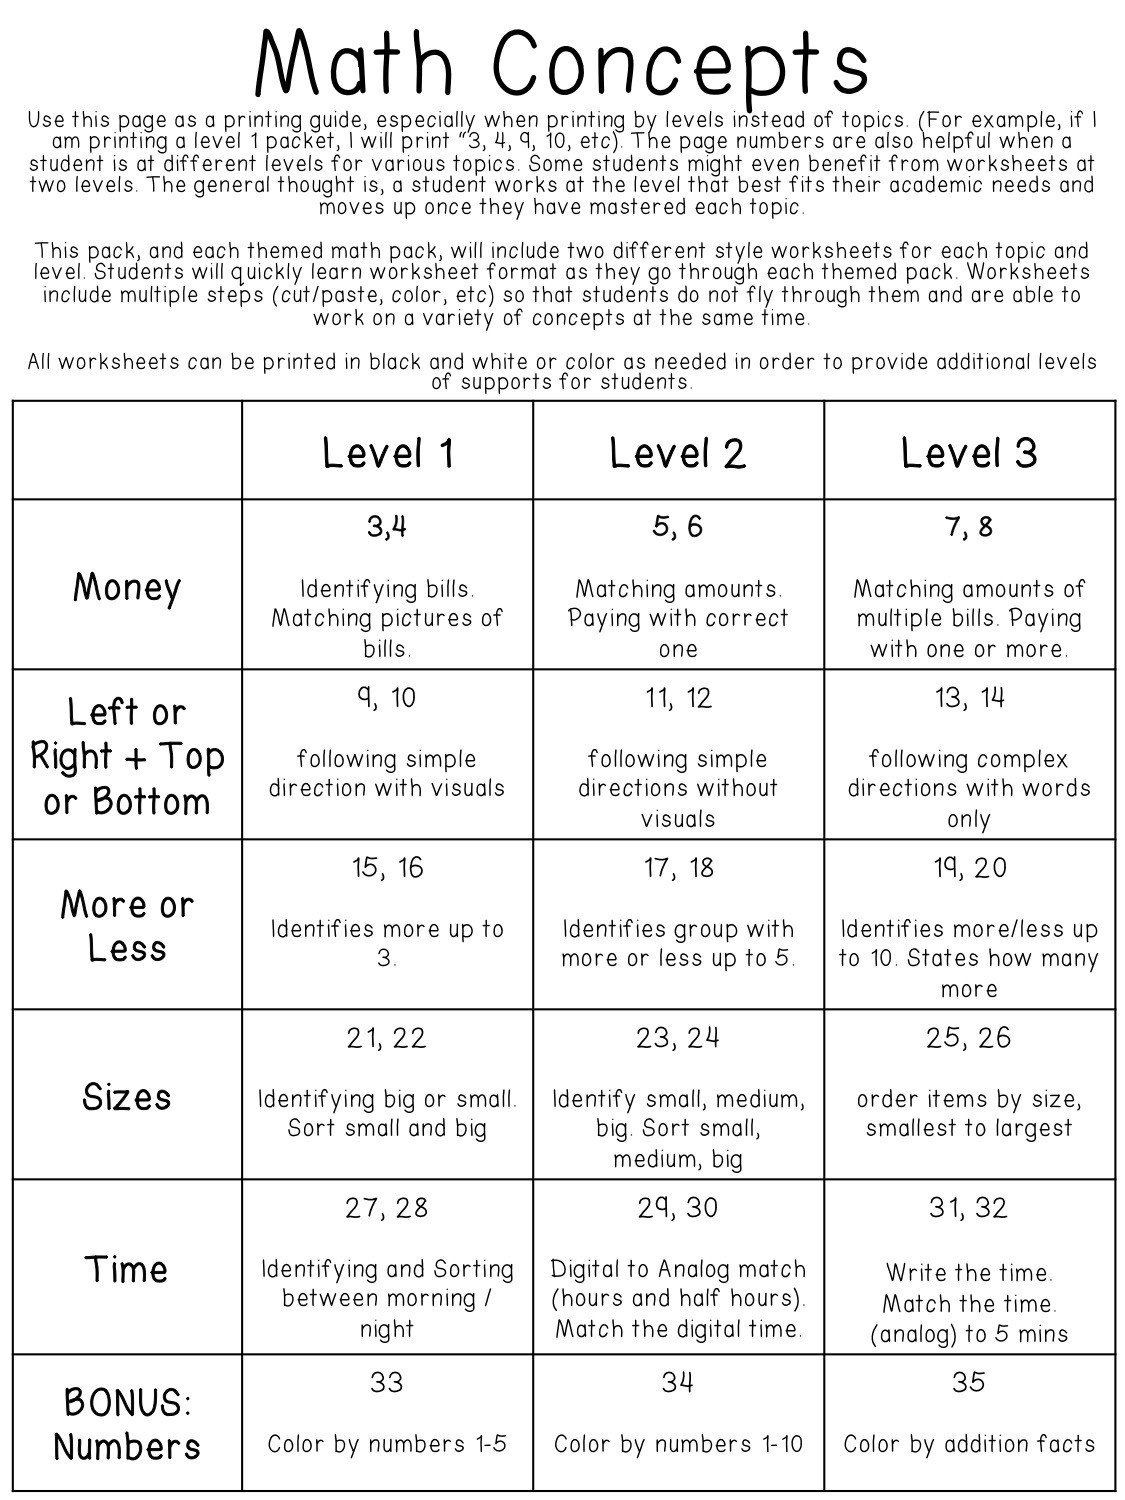 Functional Math Worksheets Special Education Pin On Free Printable Math Worksheets